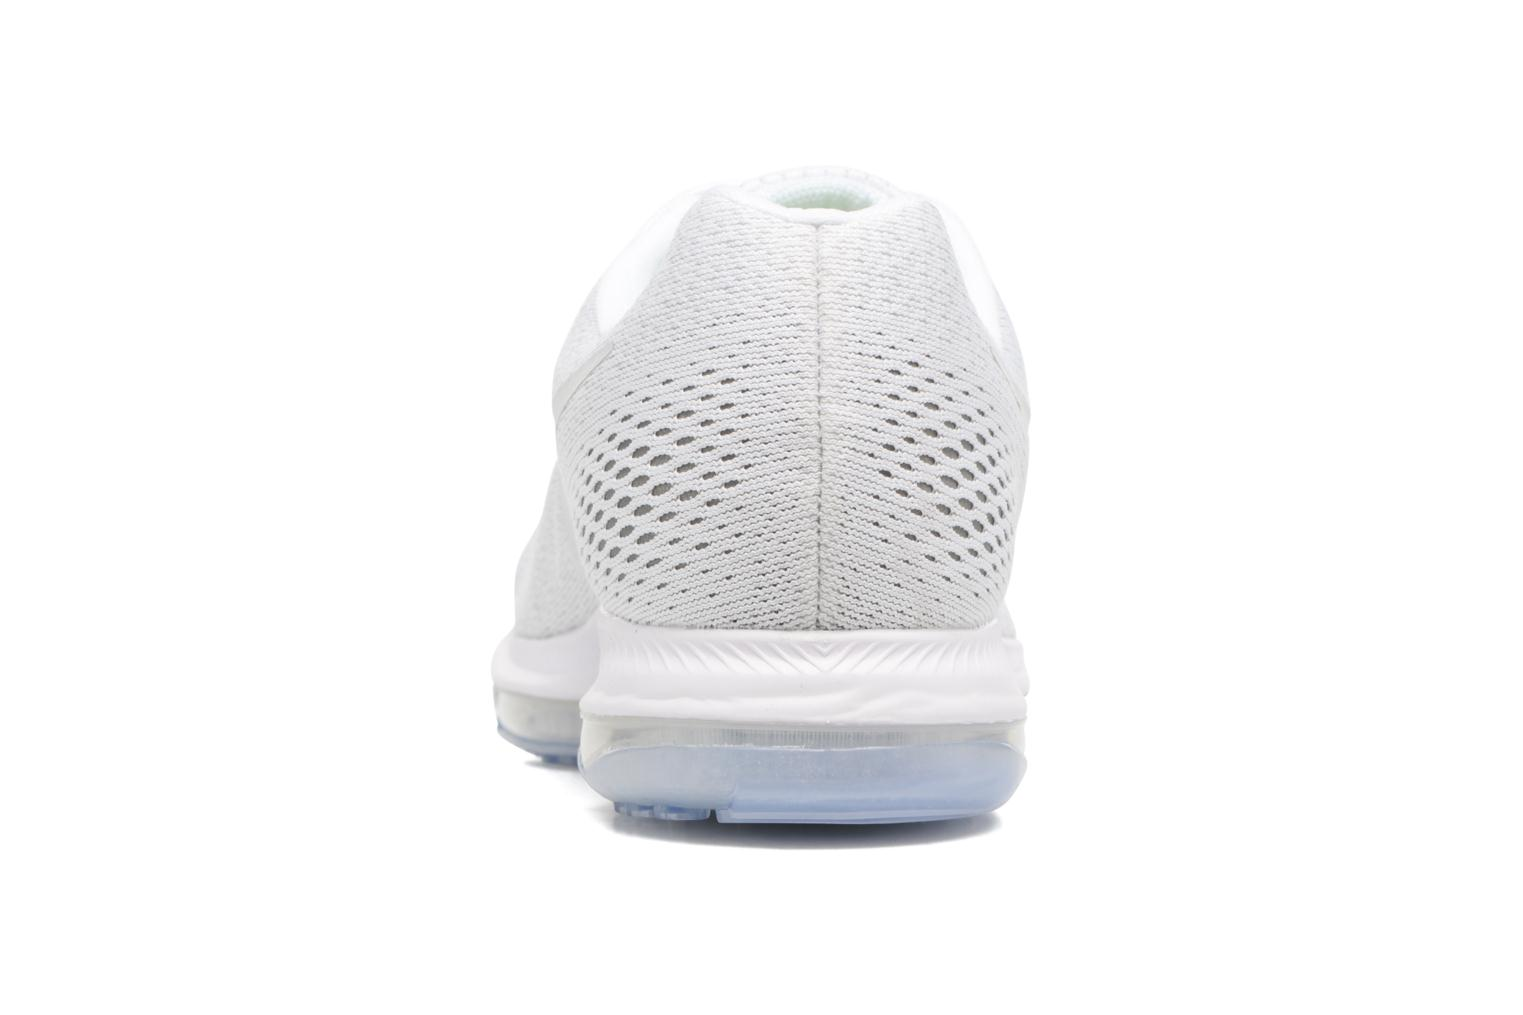 Nike Zoom All Out Low White/Pure Platinum